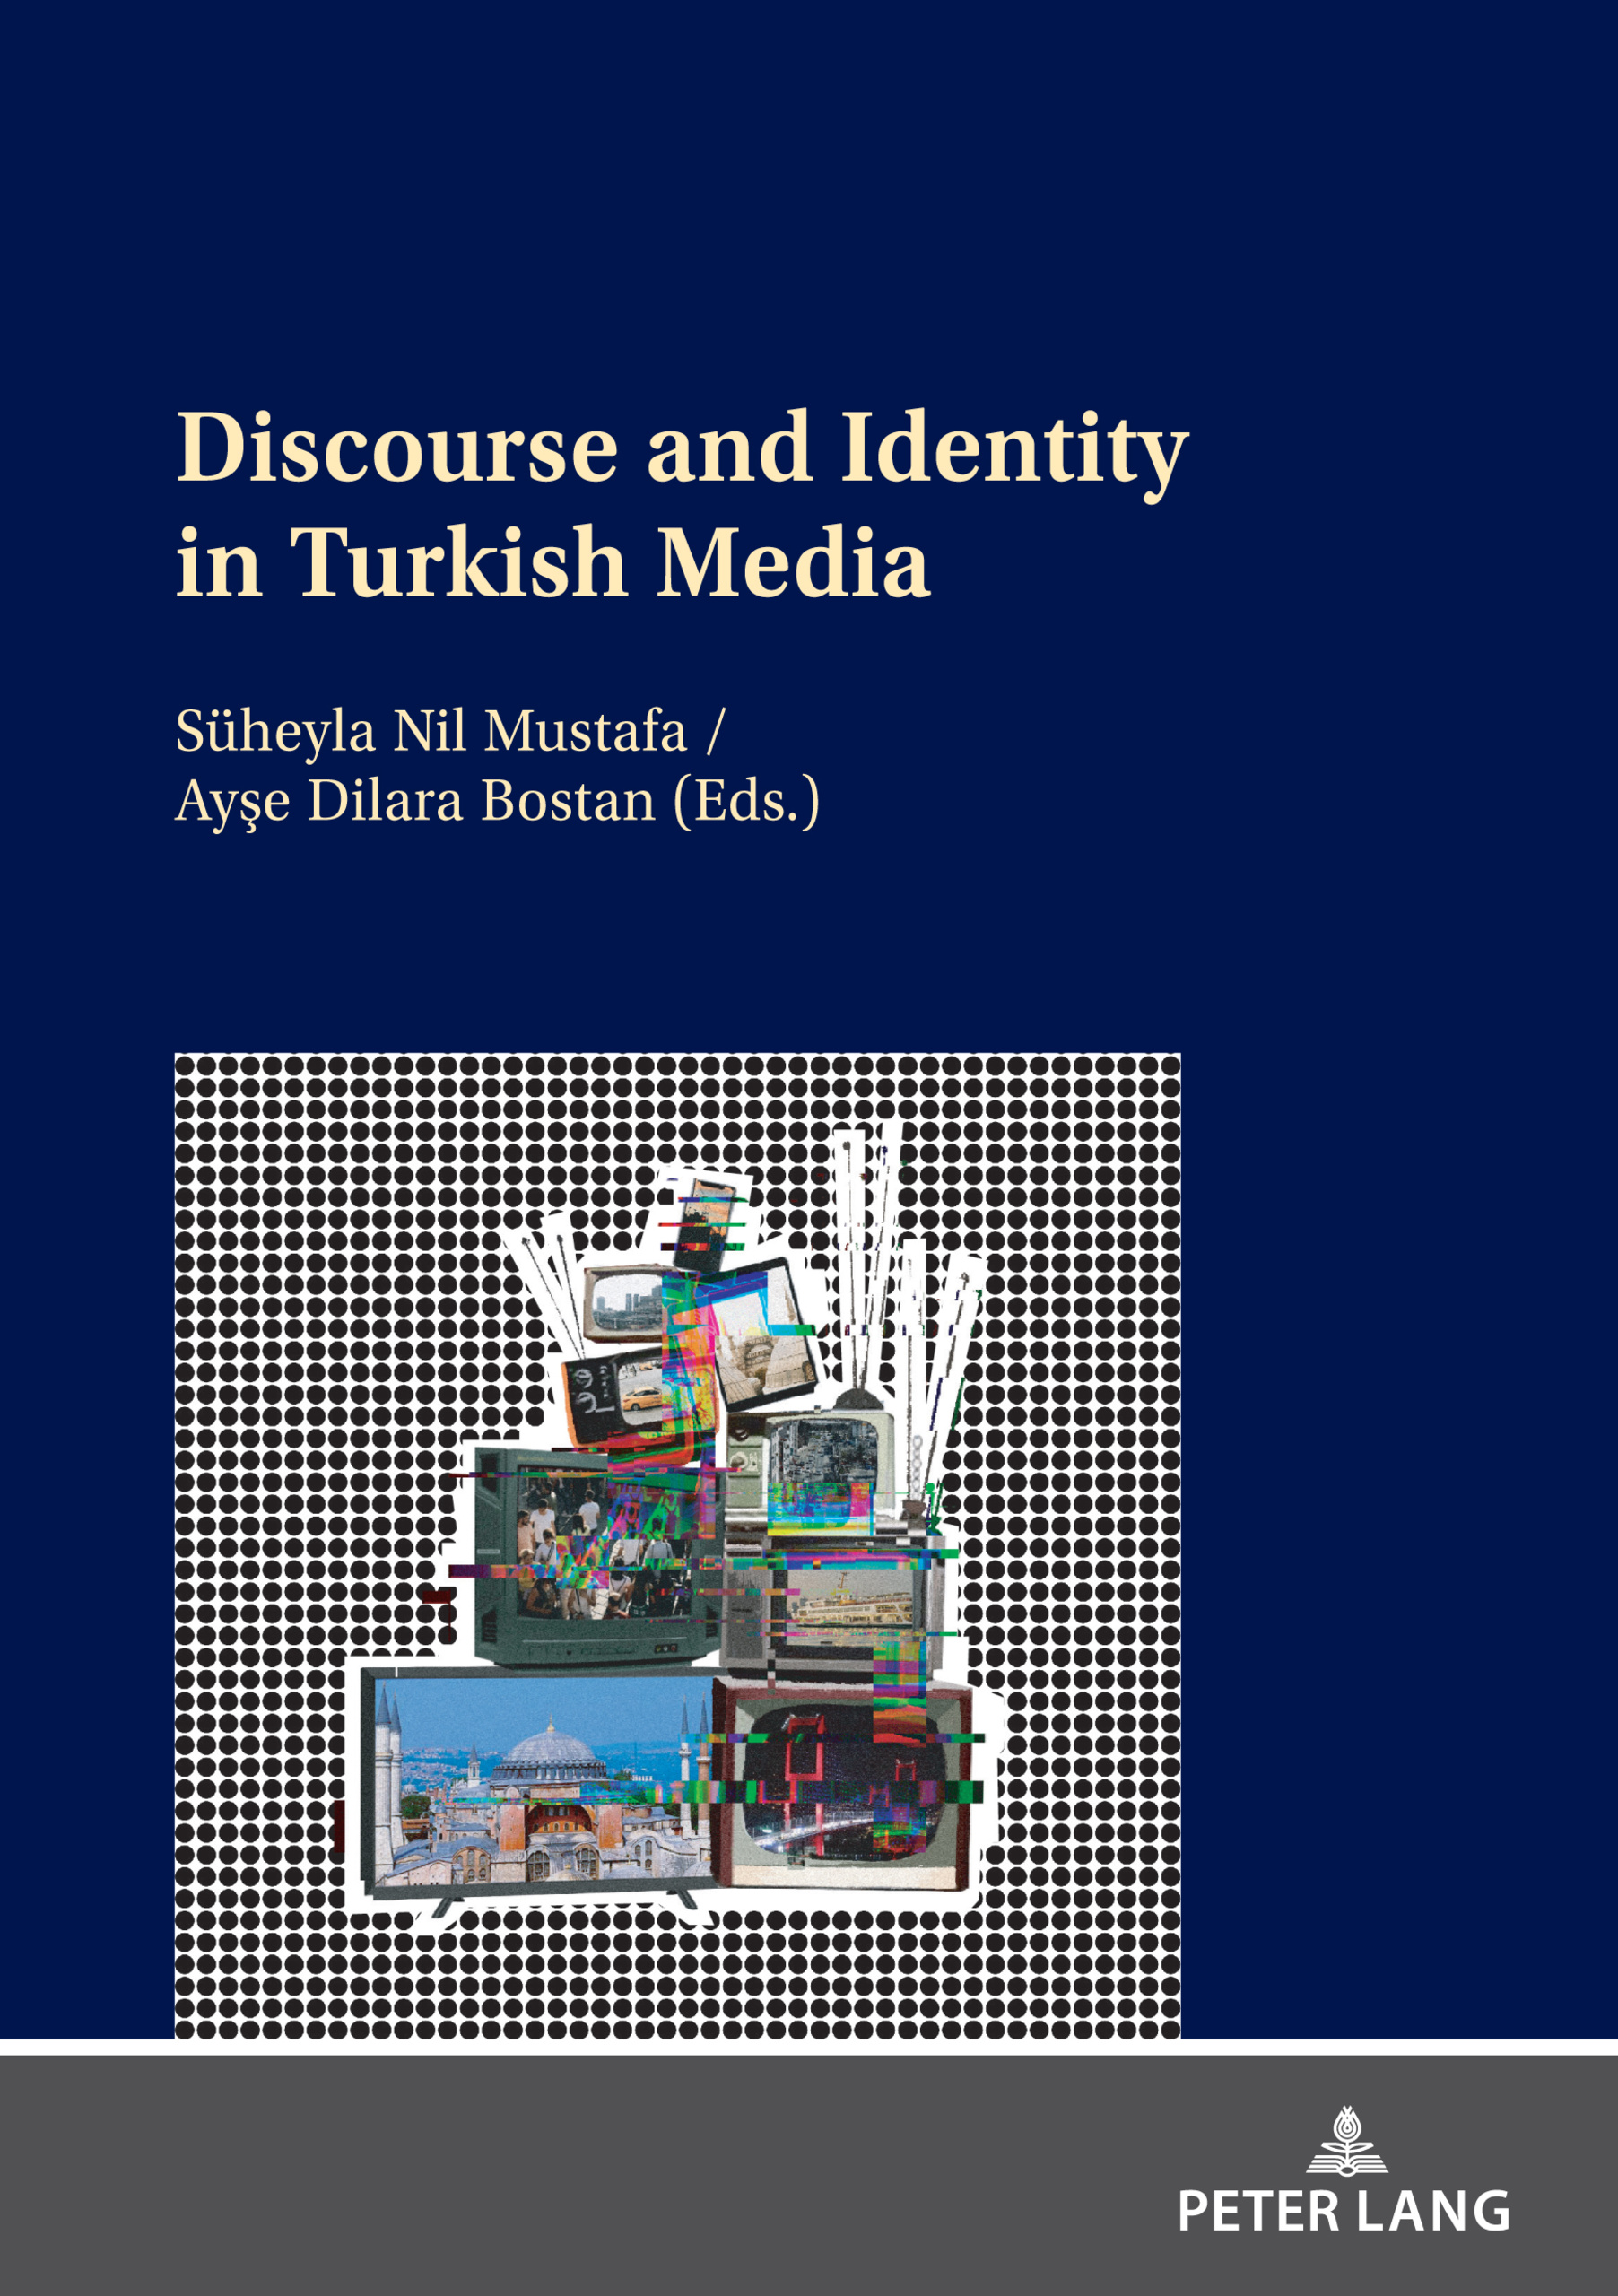 Title: Discourse and Identity in Turkish Media